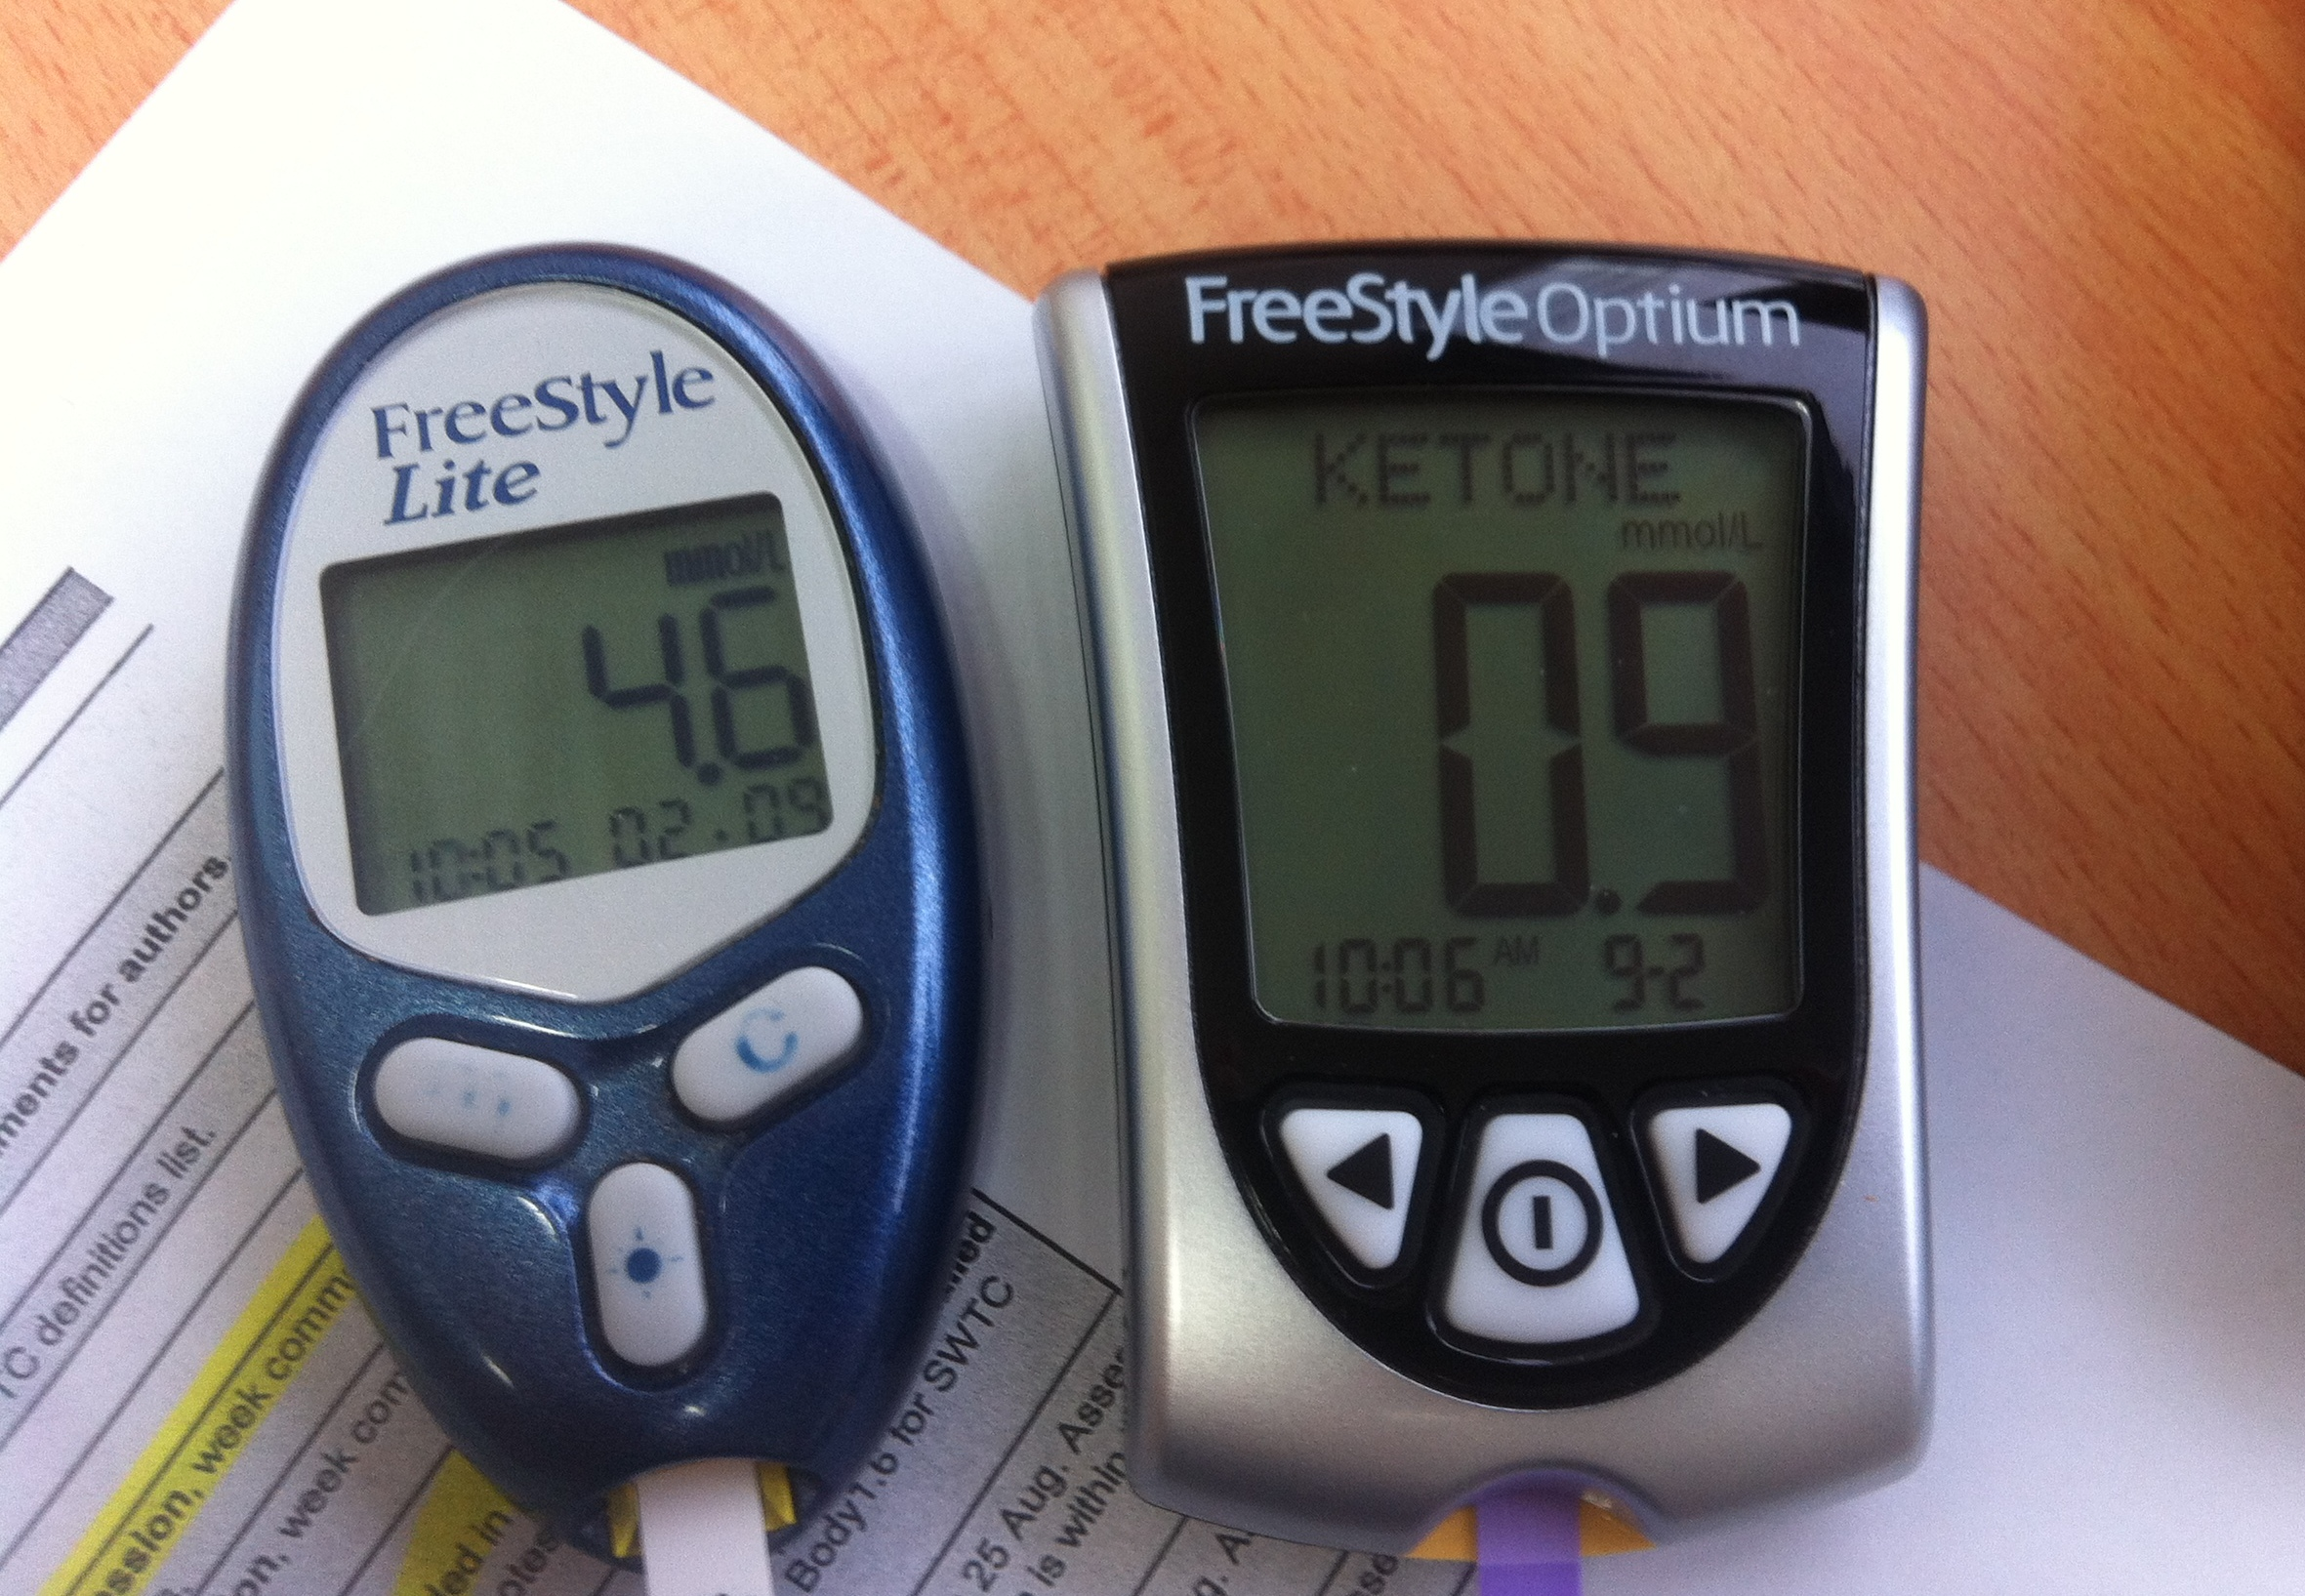 What is my blood sugar level supposed to be?